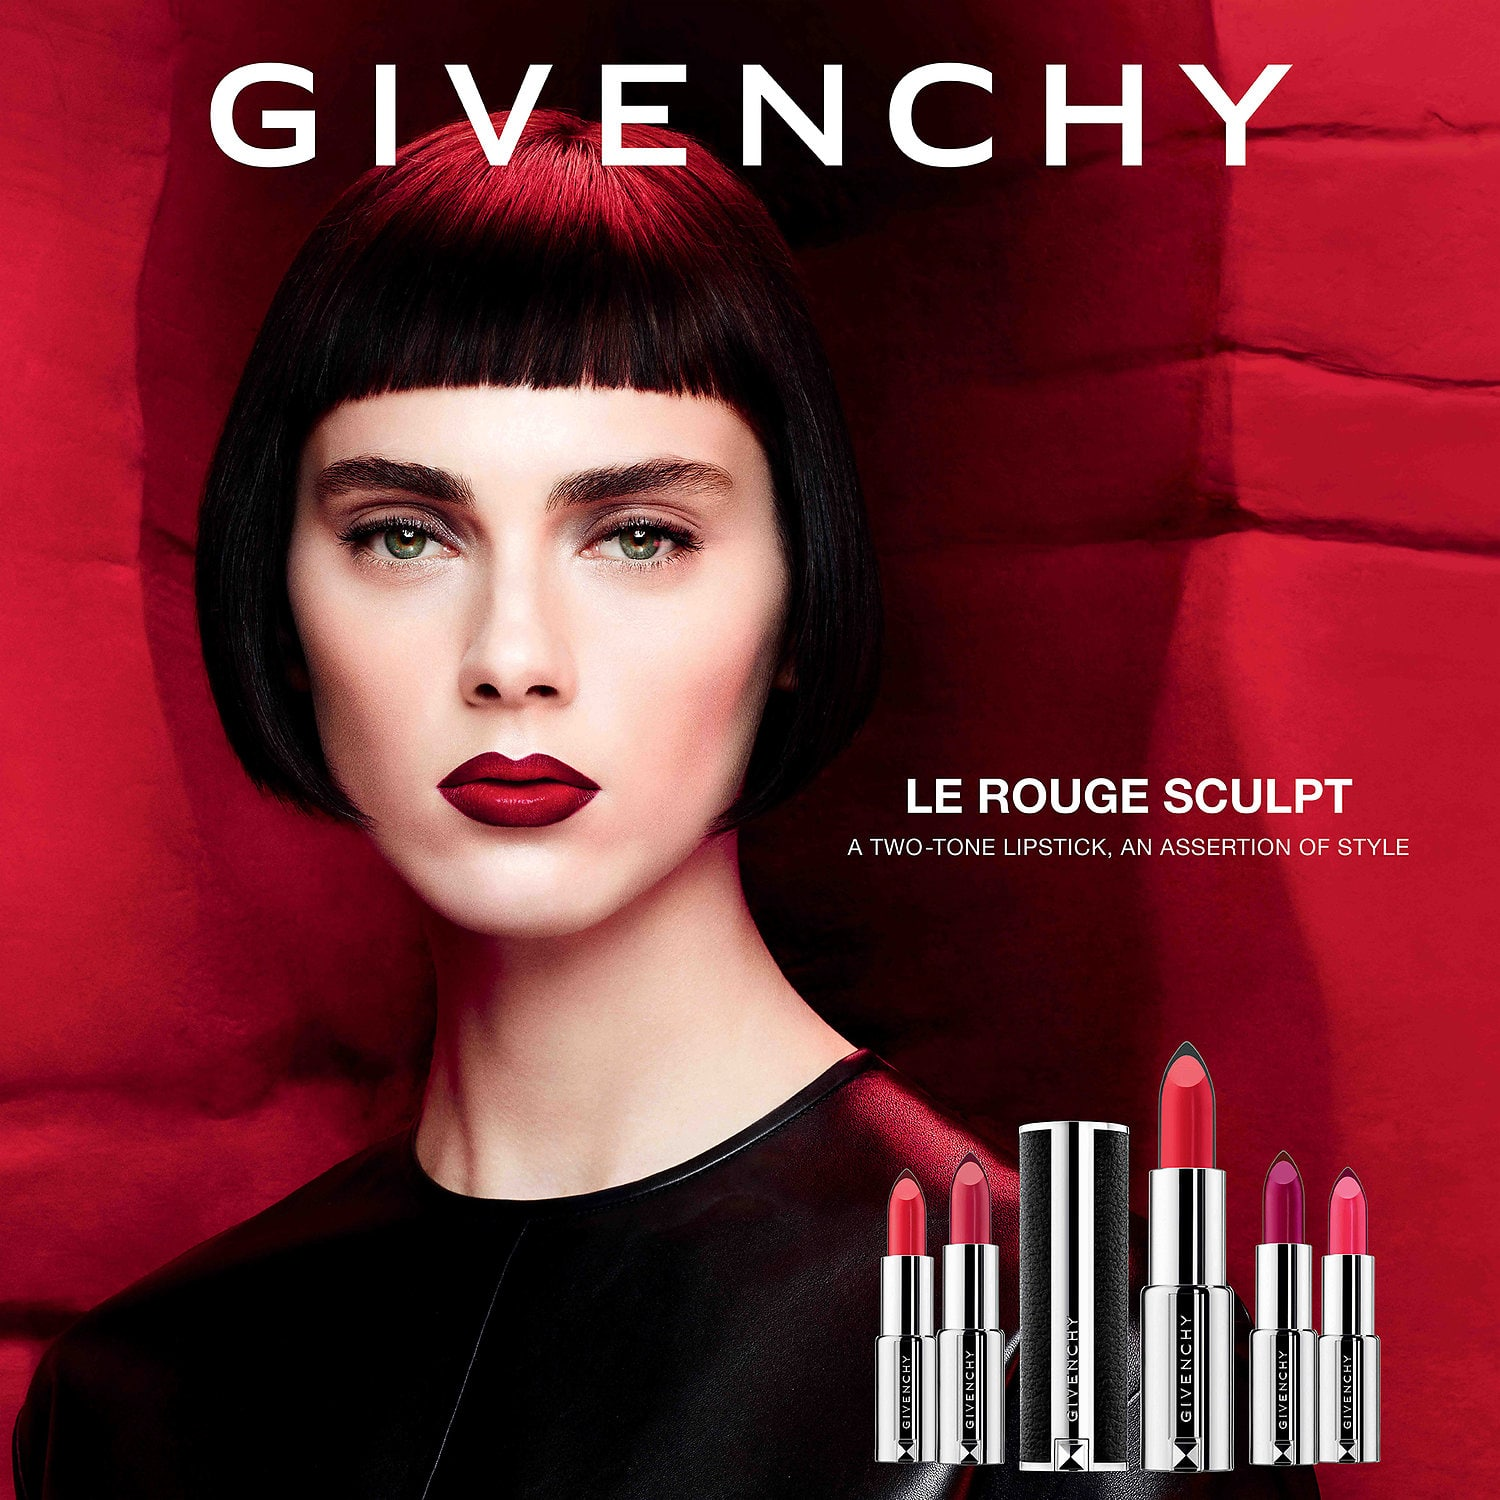 Son GIVENCHY two-tone giảm còn $24